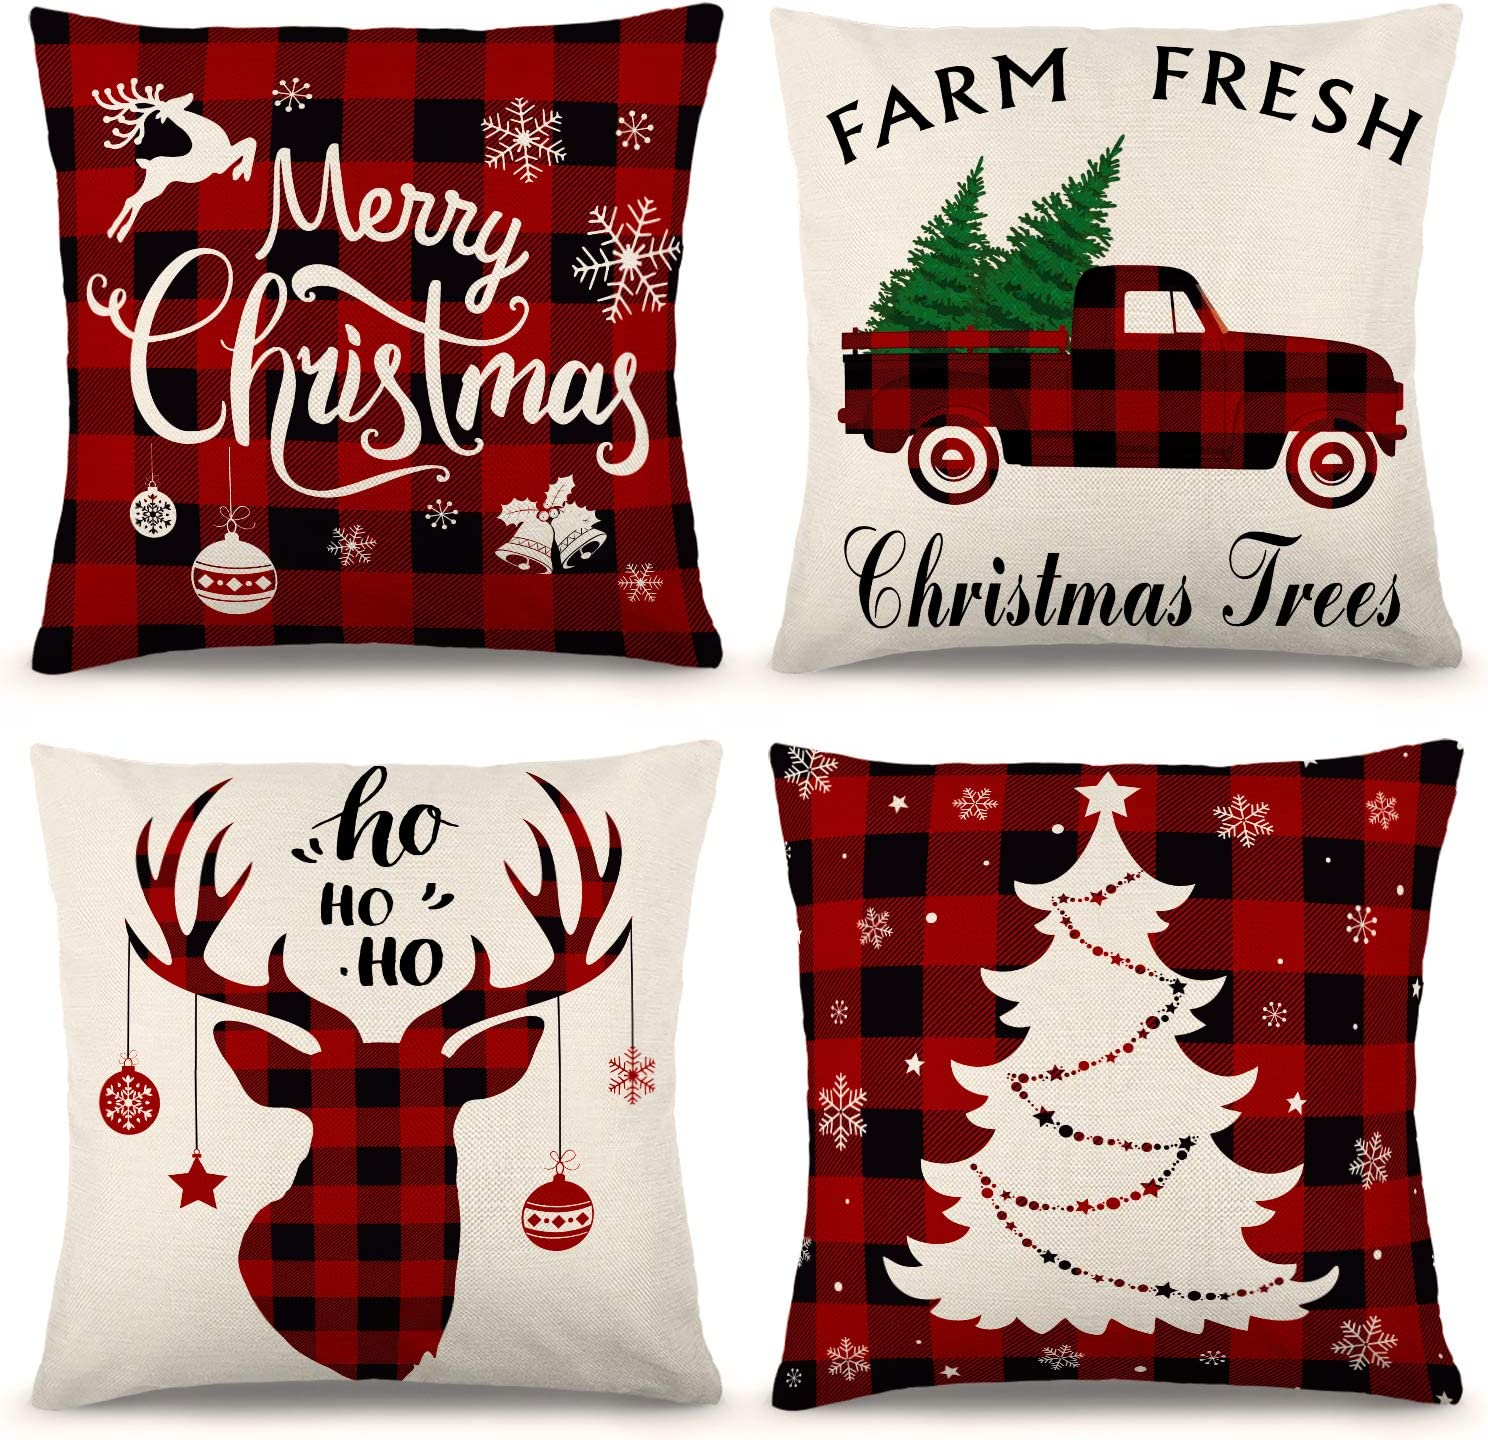 Amazon Com Ygeomer Christmas Pillow Covers 18 18 Inch Set Of 4 Farmhouse Black And Red Buffalo Plaid Pillow Covers Holiday Rustic Linen Pillow Case For Sofa Couch Christmas Decorations Throw Pillow Covers Home